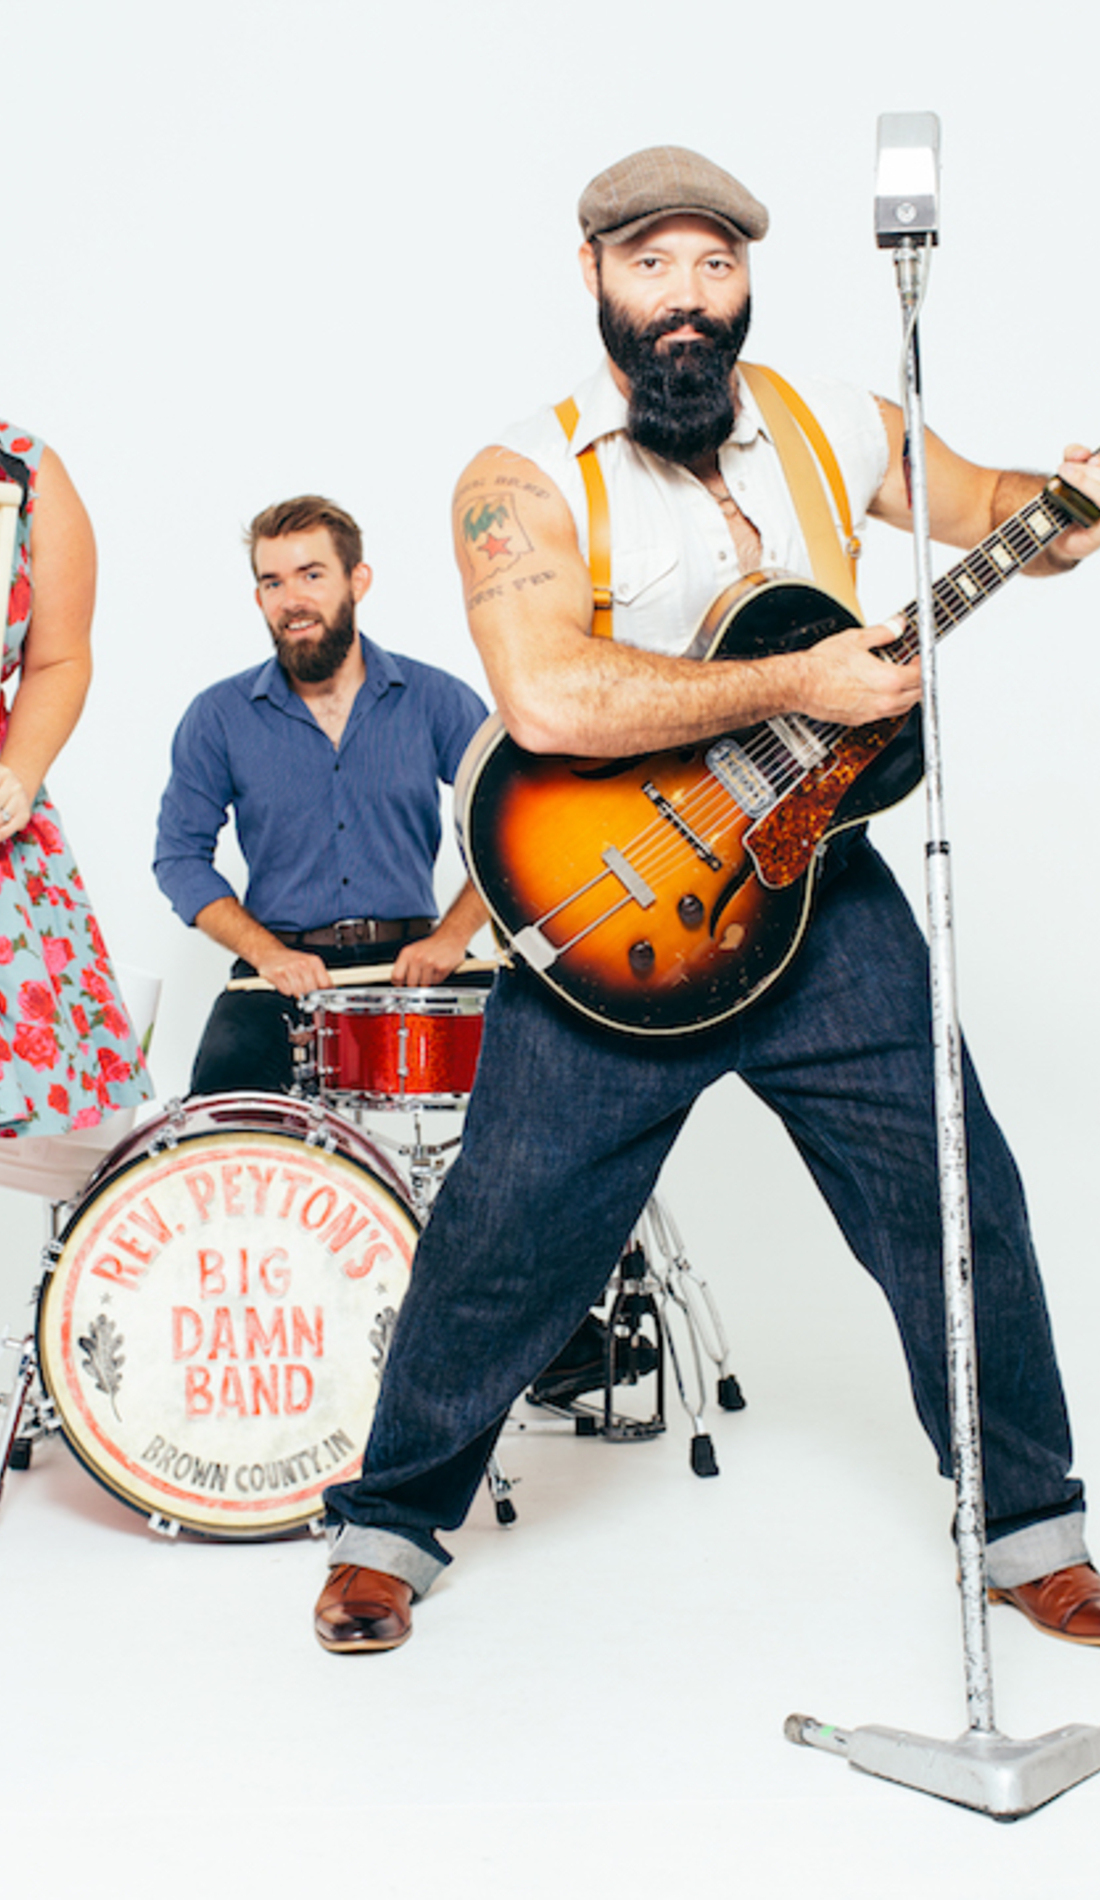 A The Reverend Peyton's Big Damn Band live event